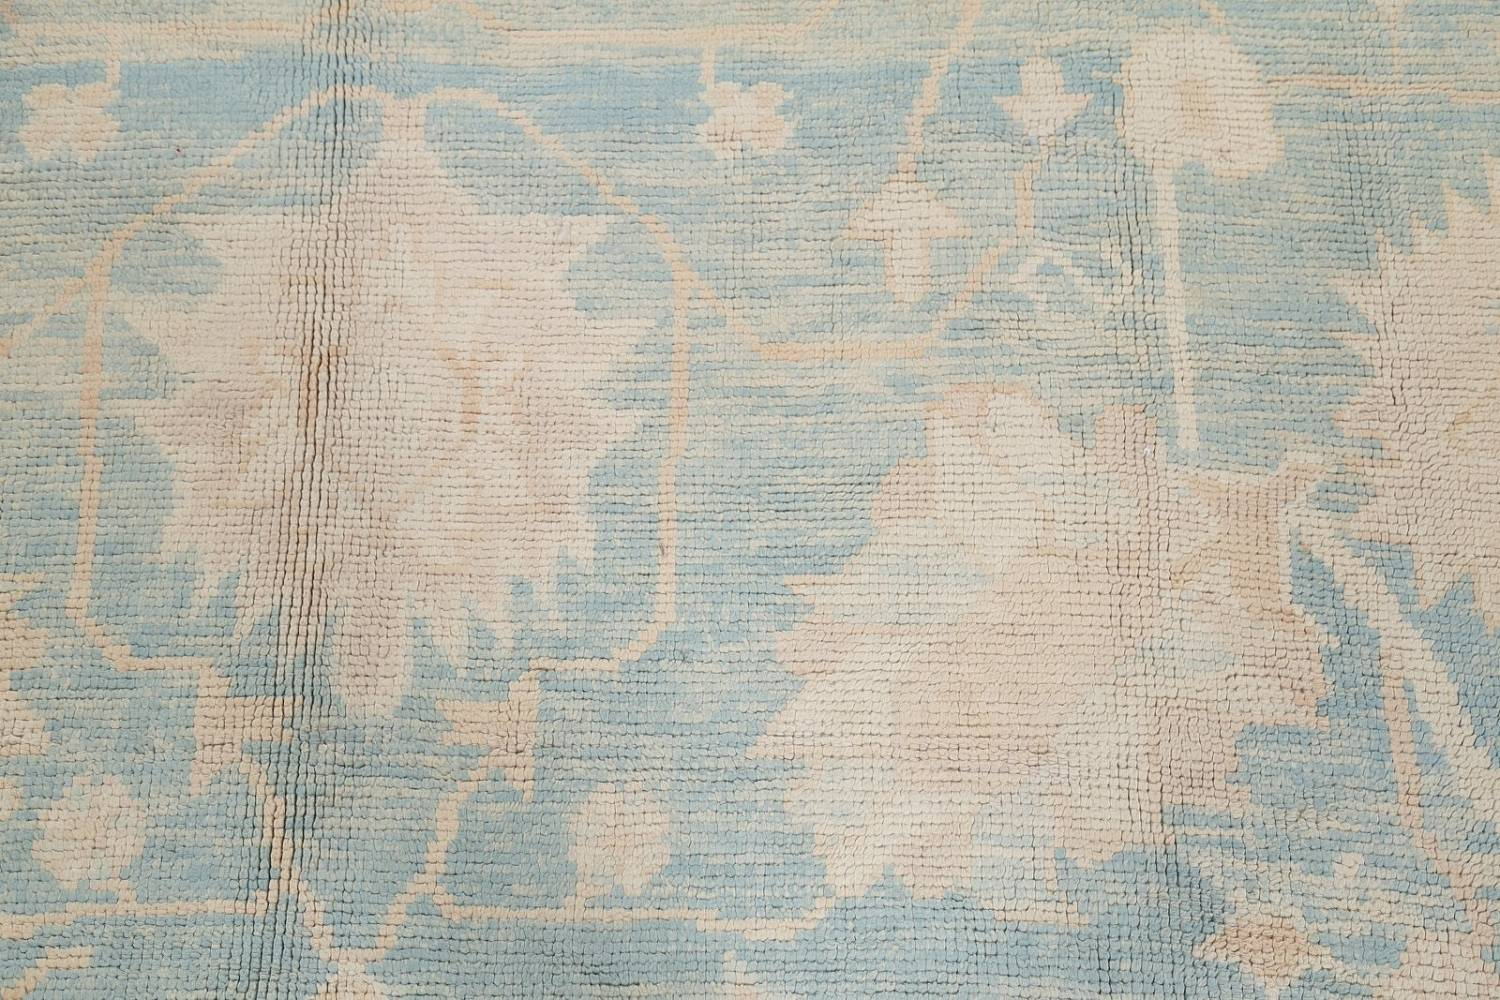 Vegetable Dye Muted Blue Oushak Turkish Hand-Knotted Area Rug 10x14 image 9